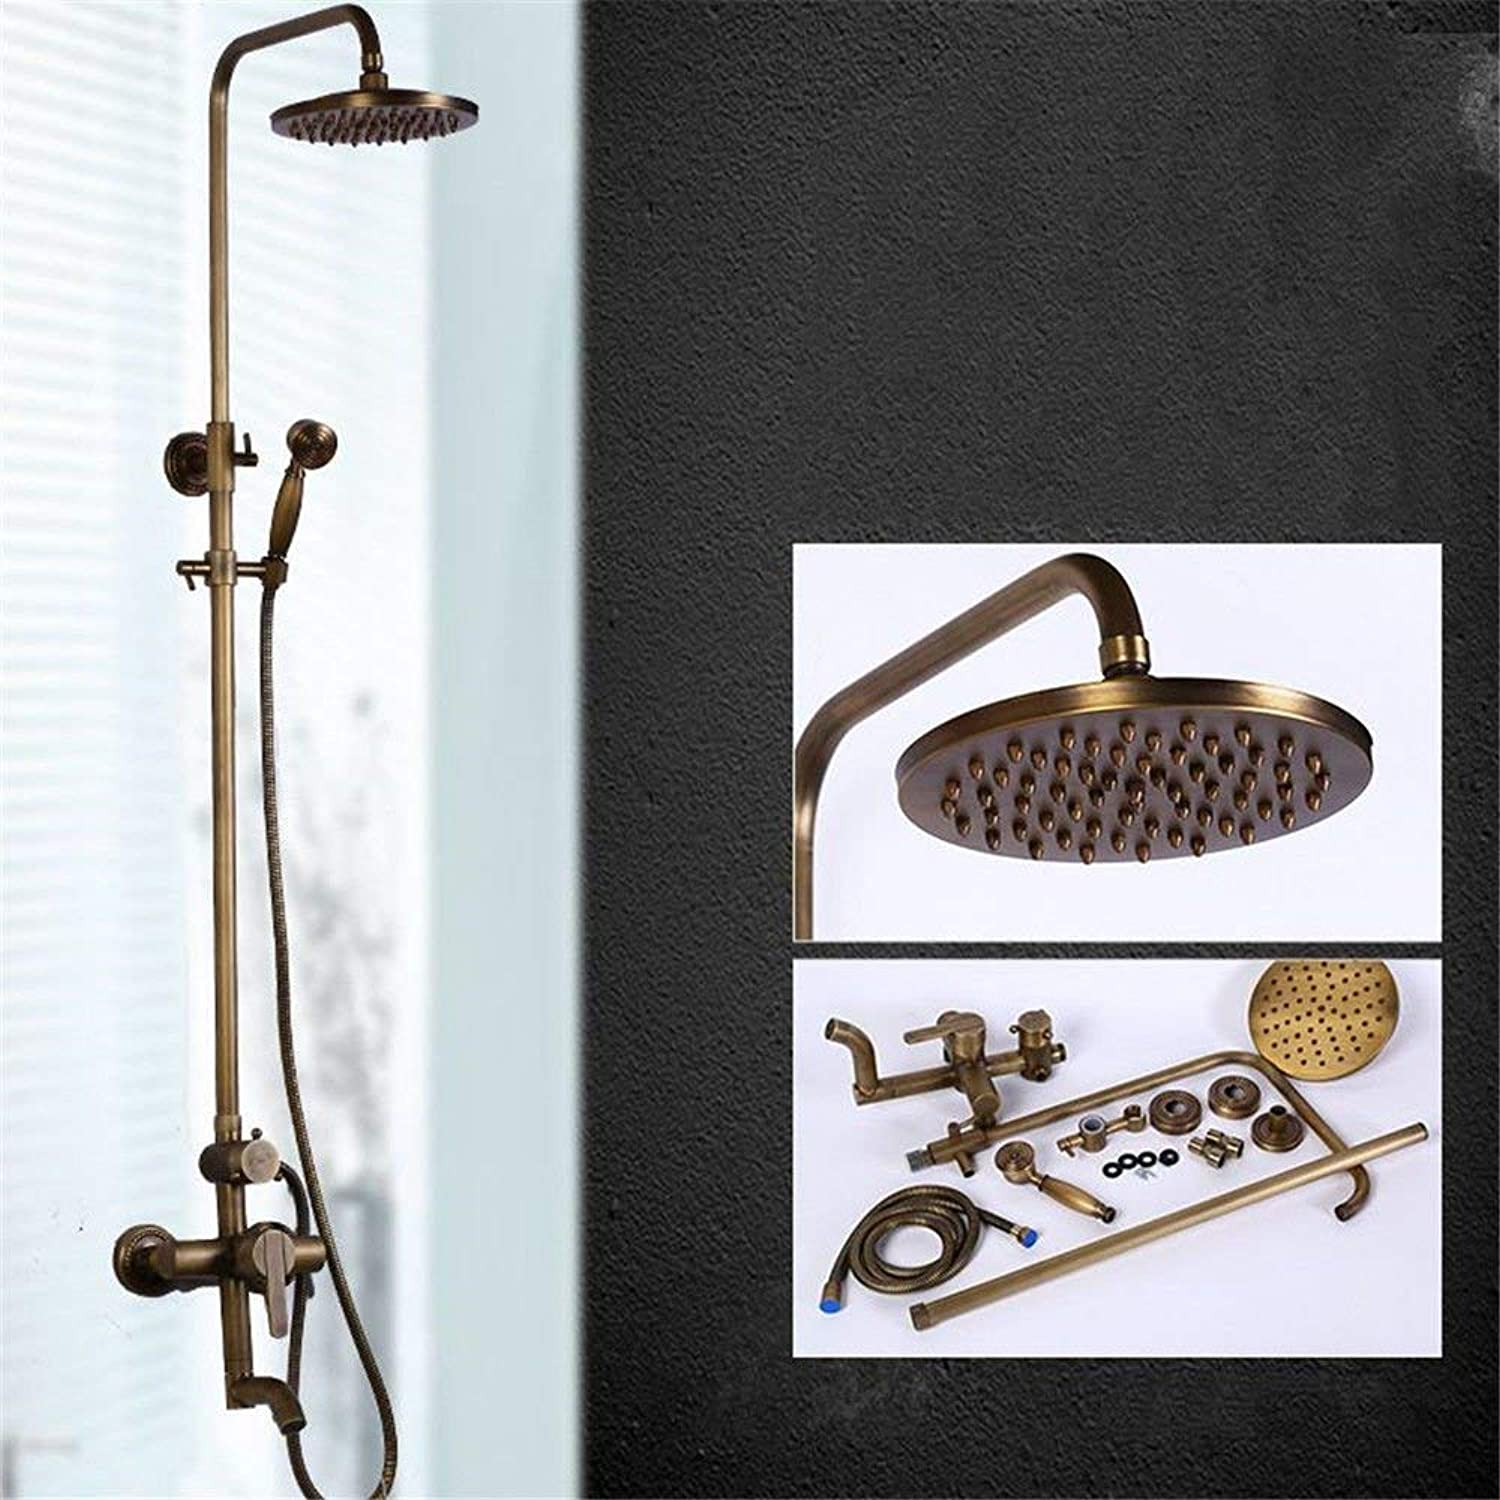 FERZA home Sink Mixer Tap Bathroom Kitchen Basin Tap Leakproof Save Water Antique Shower Full Copper Shower Wall Mounted Lift Shower Head?Hand Held Shower Shower Temperature Control